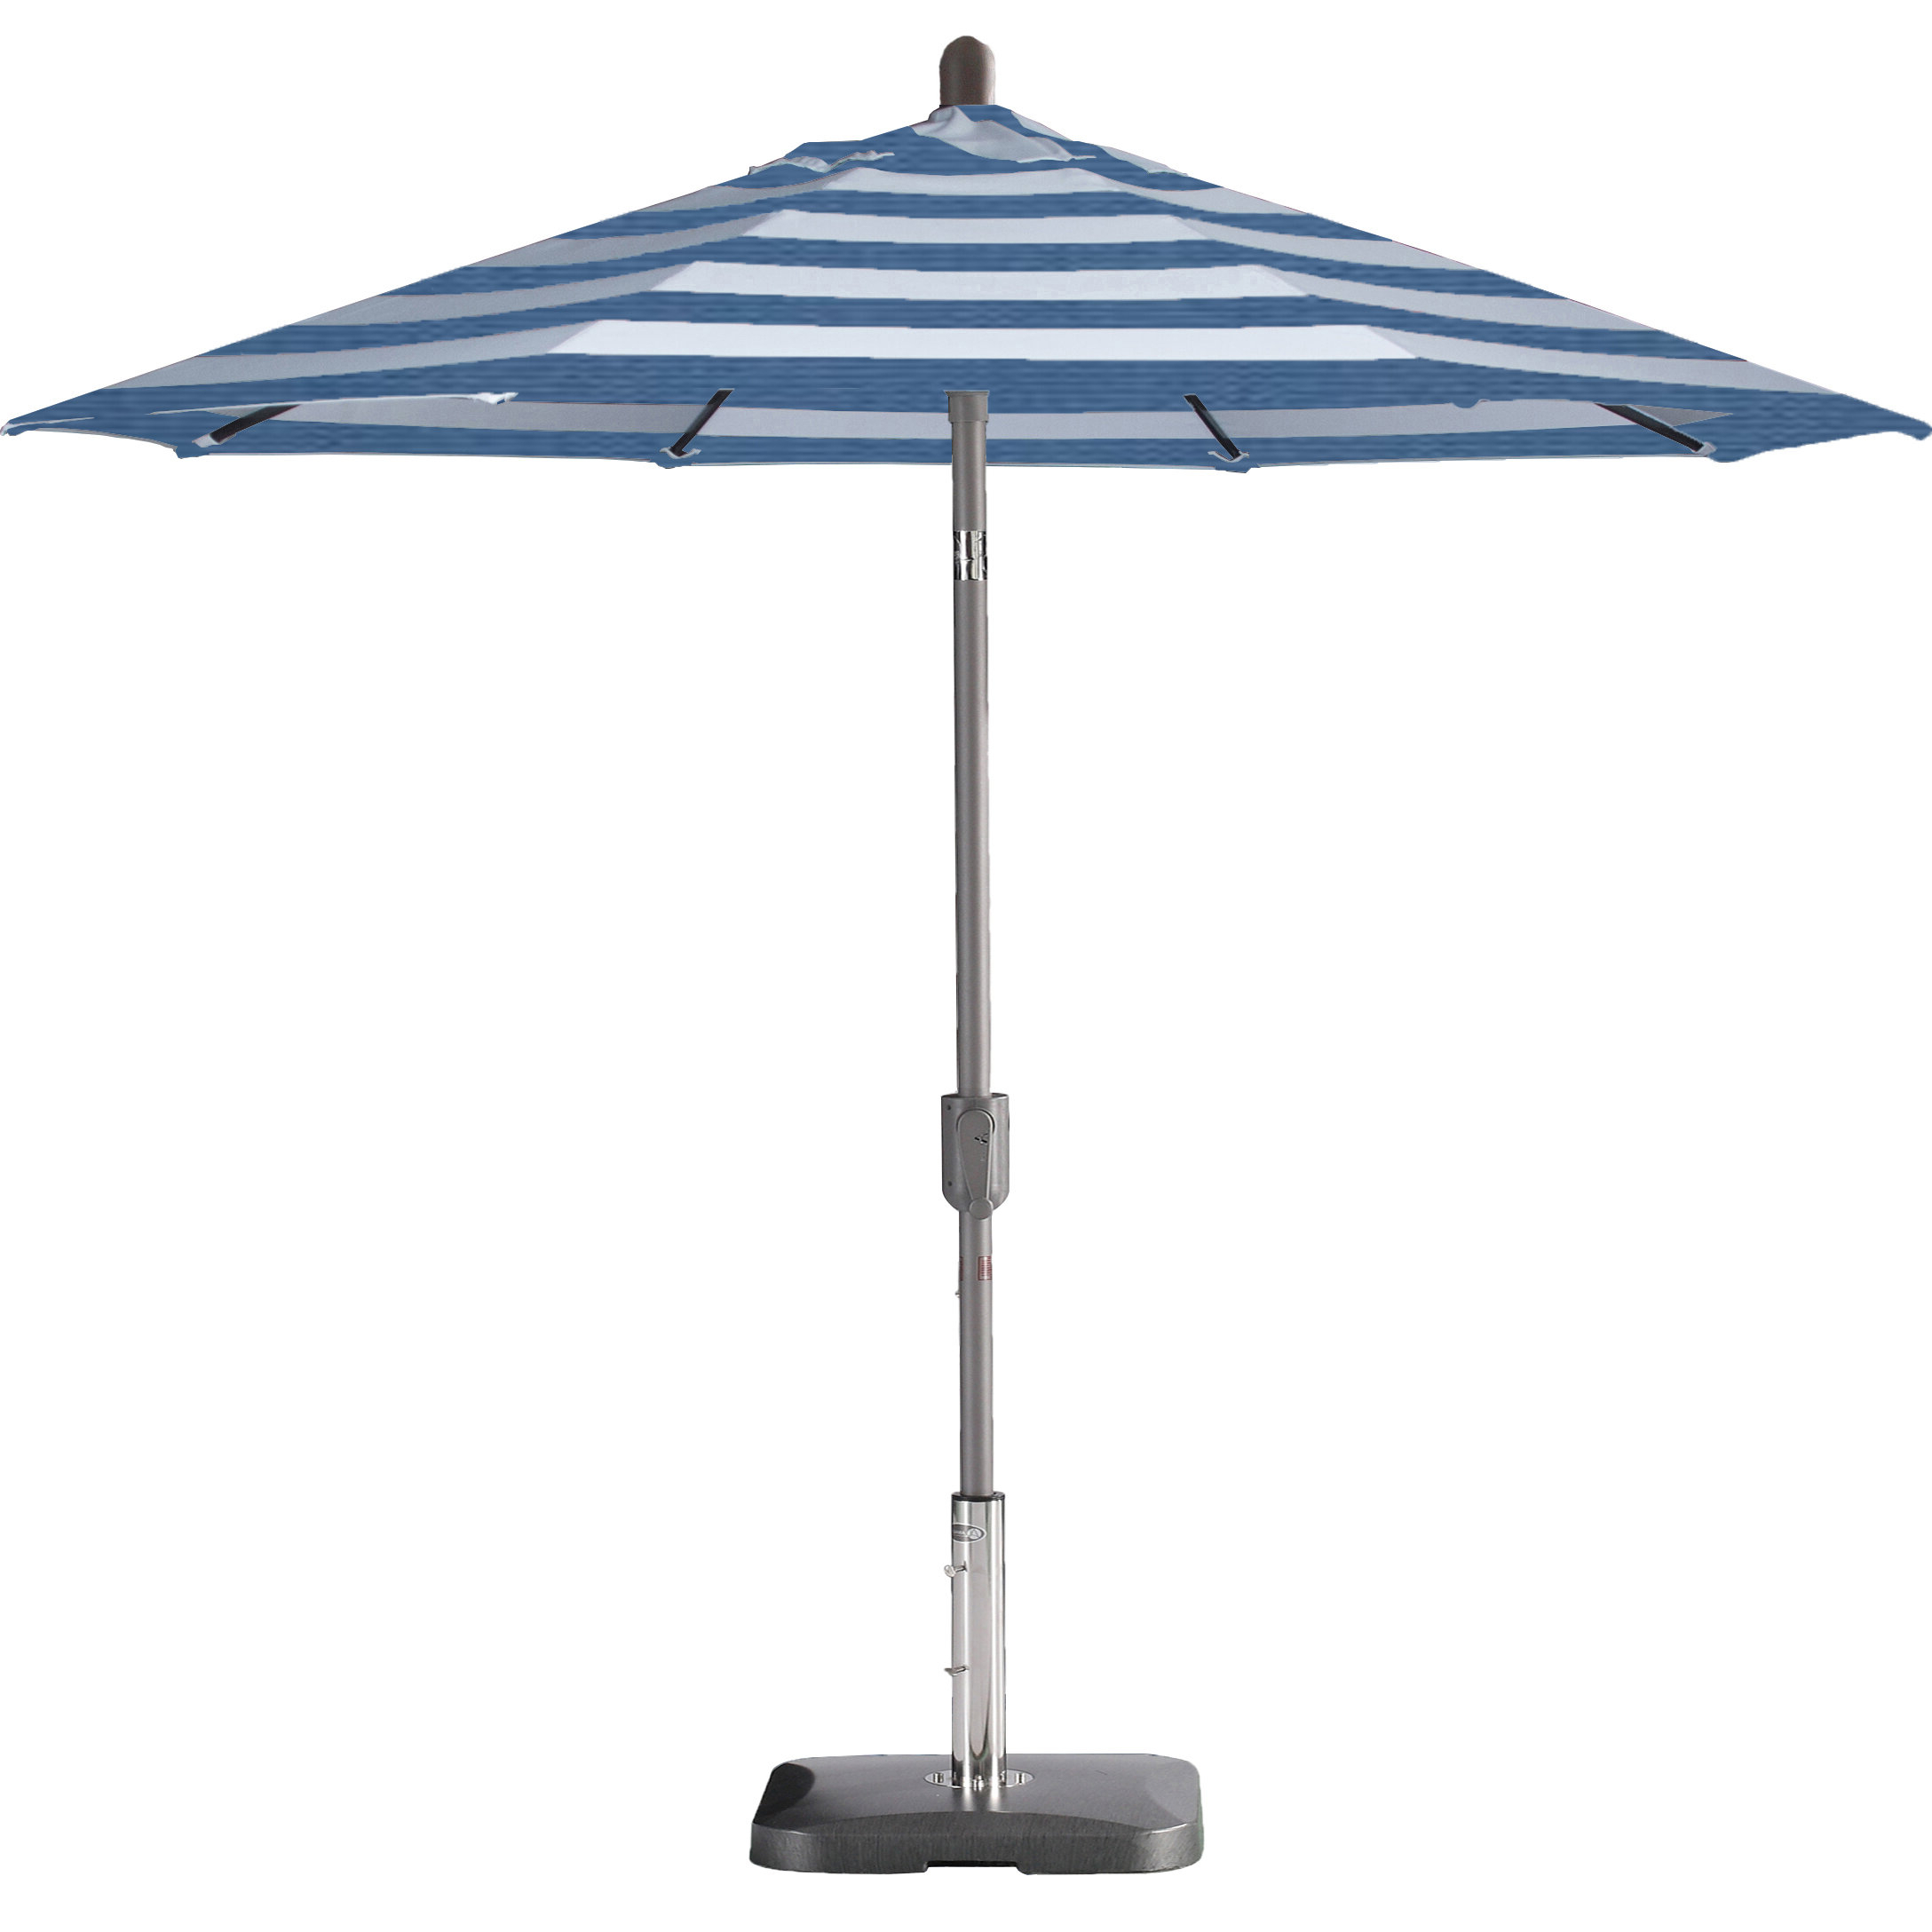 Gainsborough Market Umbrellas With Well Known Wiechmann Push Tilt 9' Market Sunbrella Umbrella (View 9 of 20)